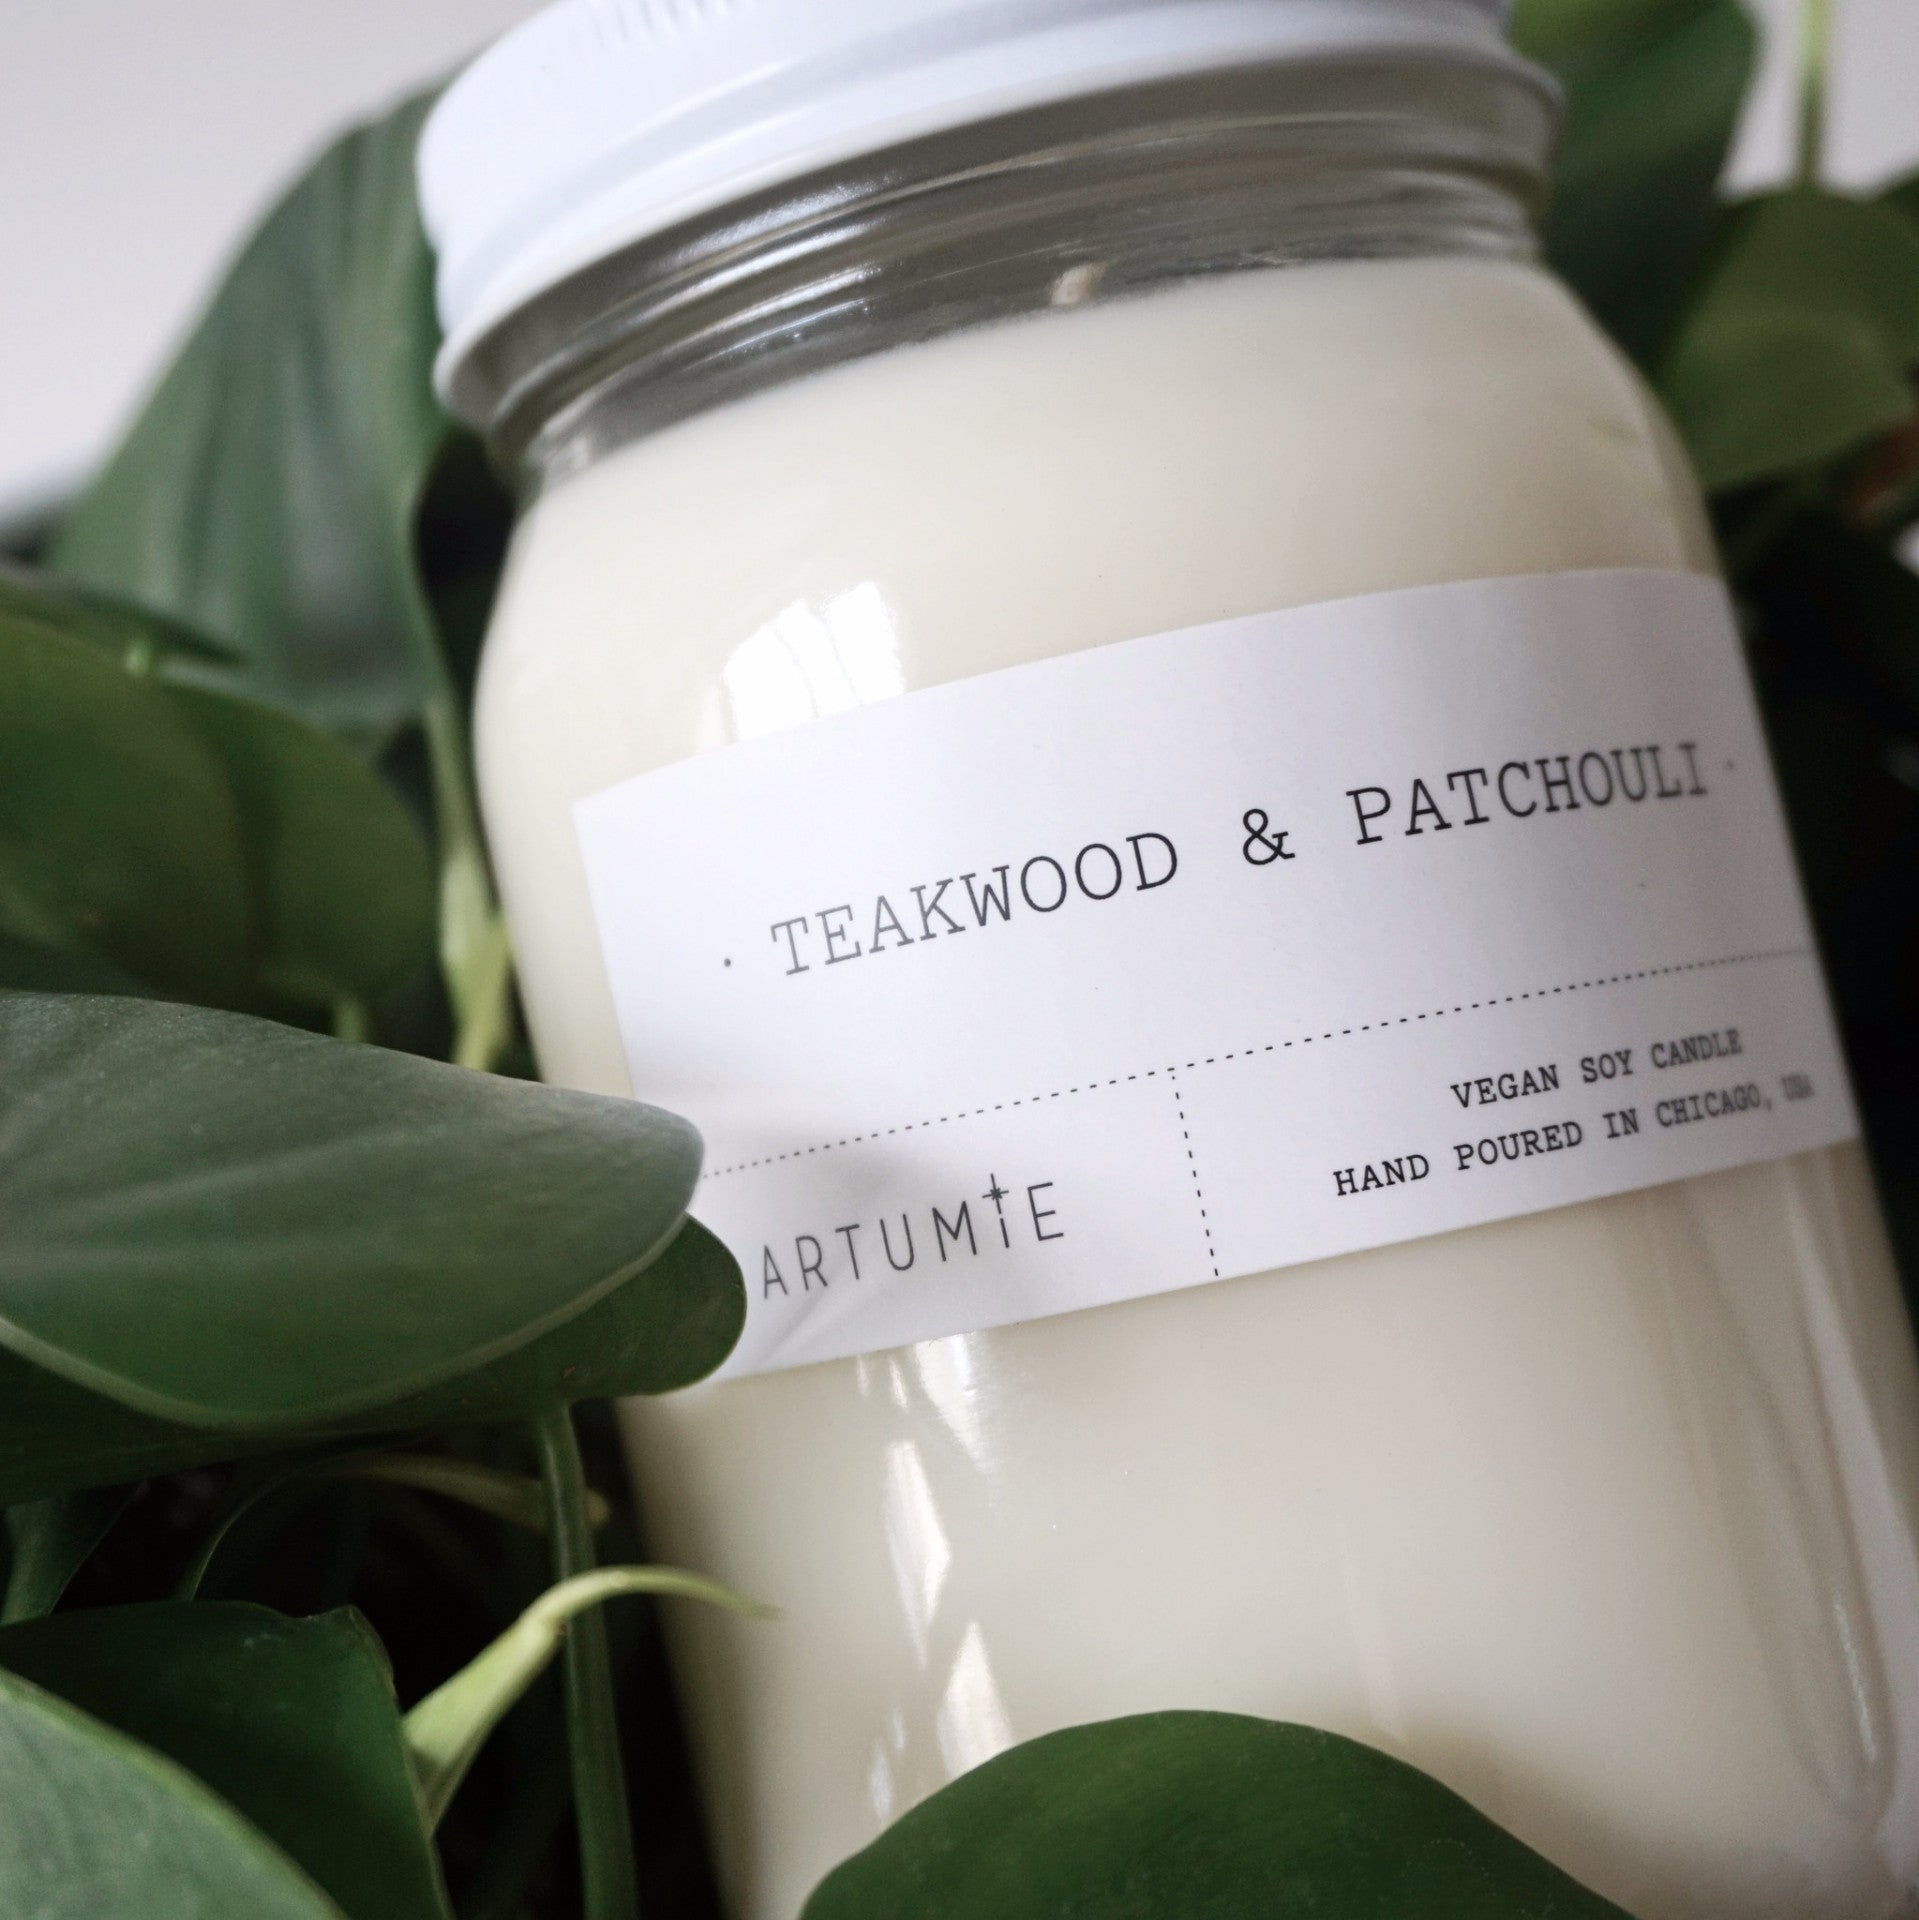 Teakwood & Patchouli 16 oz Soy Candle